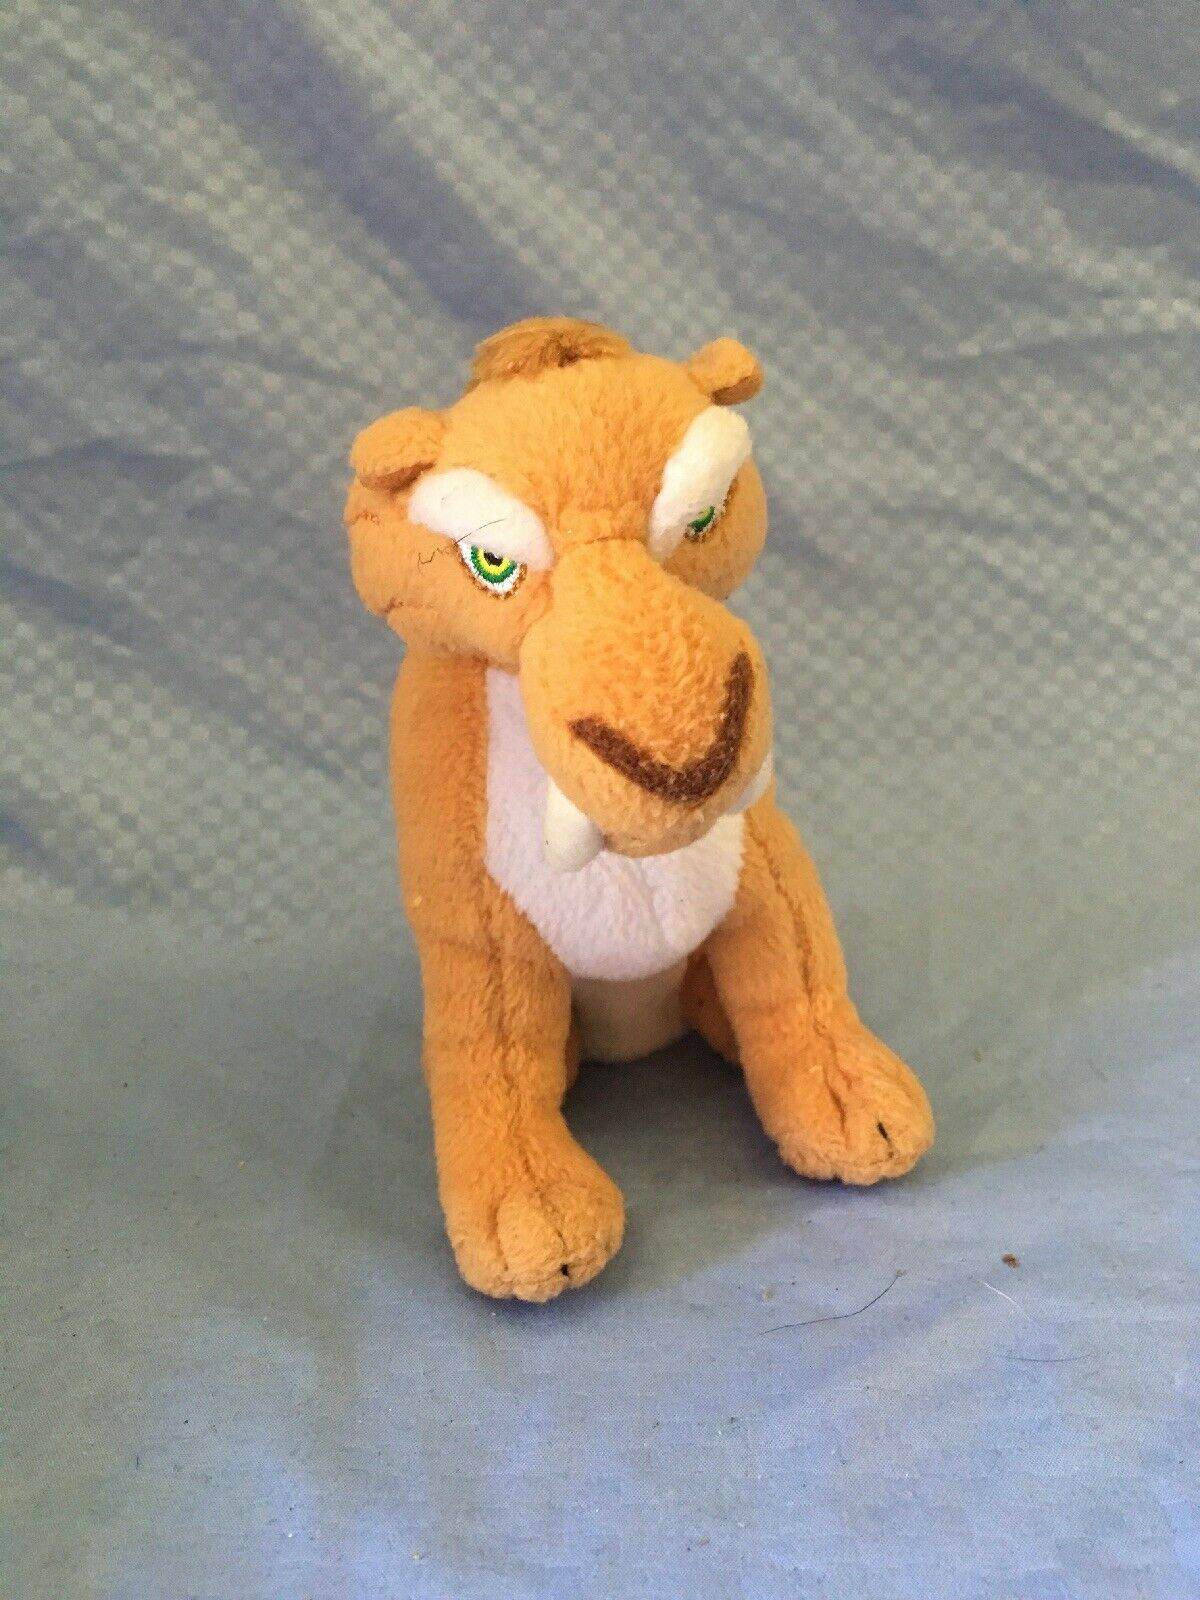 Ty Plush Diego Ice Age Saber Tooth Tiger Stuffed Animal Toy Brown Beanie Baby For Sale Online